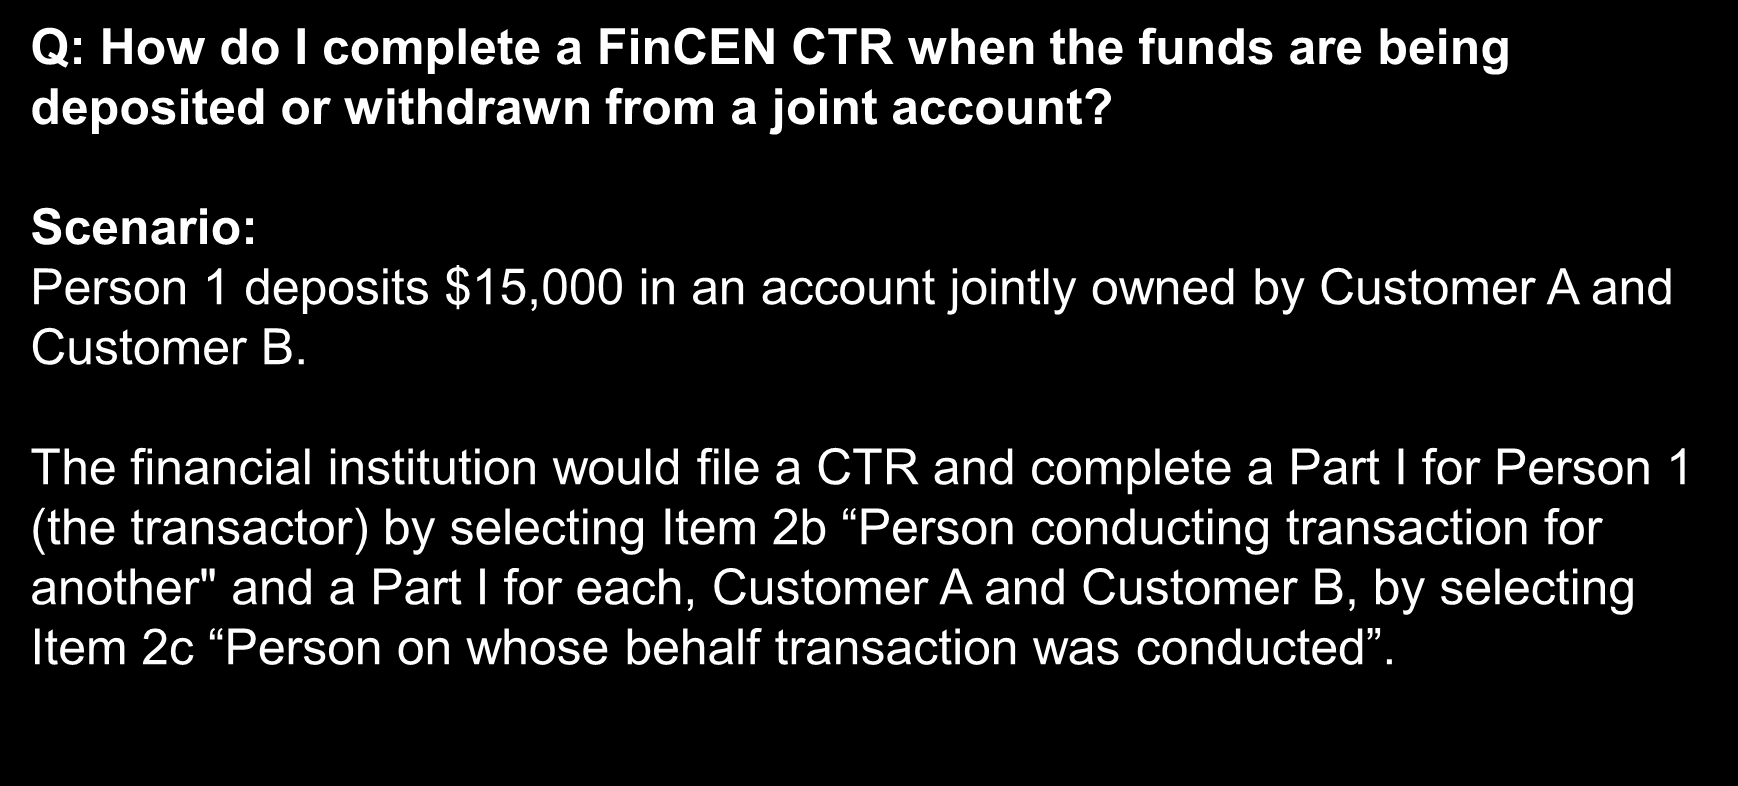 Frequently Asked Questions Q: How do I complete a FinCEN CTR when the funds are being deposited or withdrawn from a joint account?